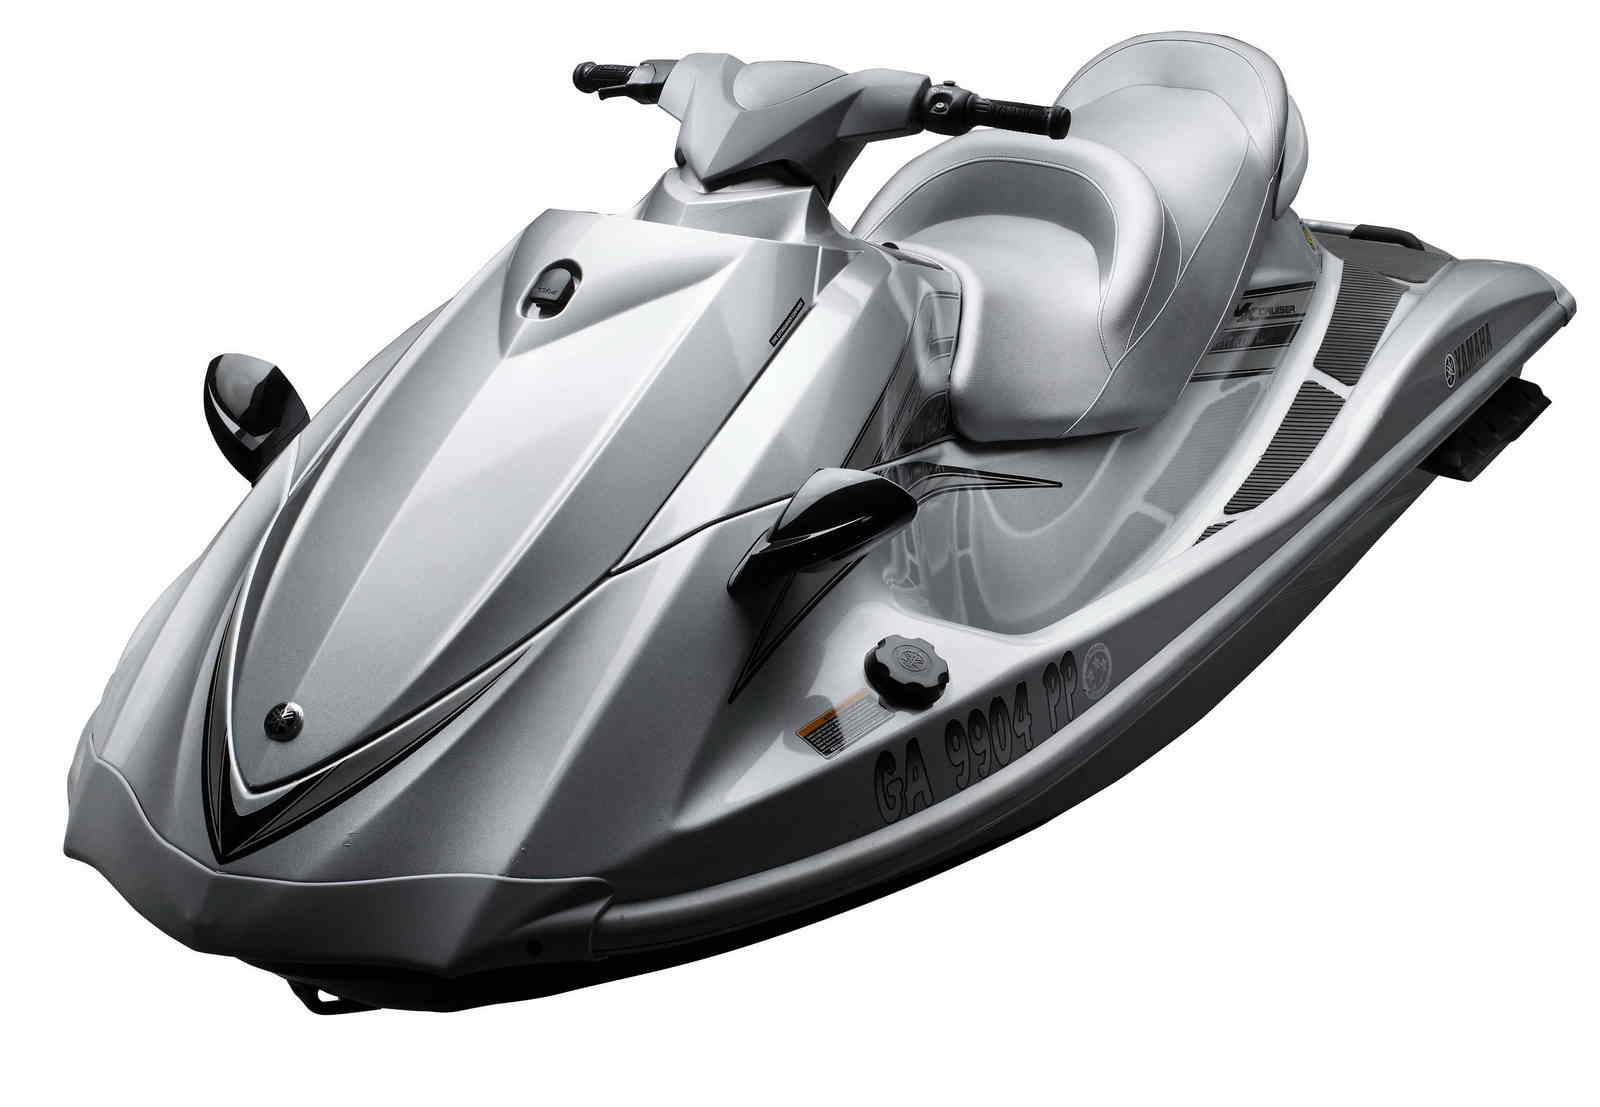 2009 yamaha vx cruiser picture 262043 boat review